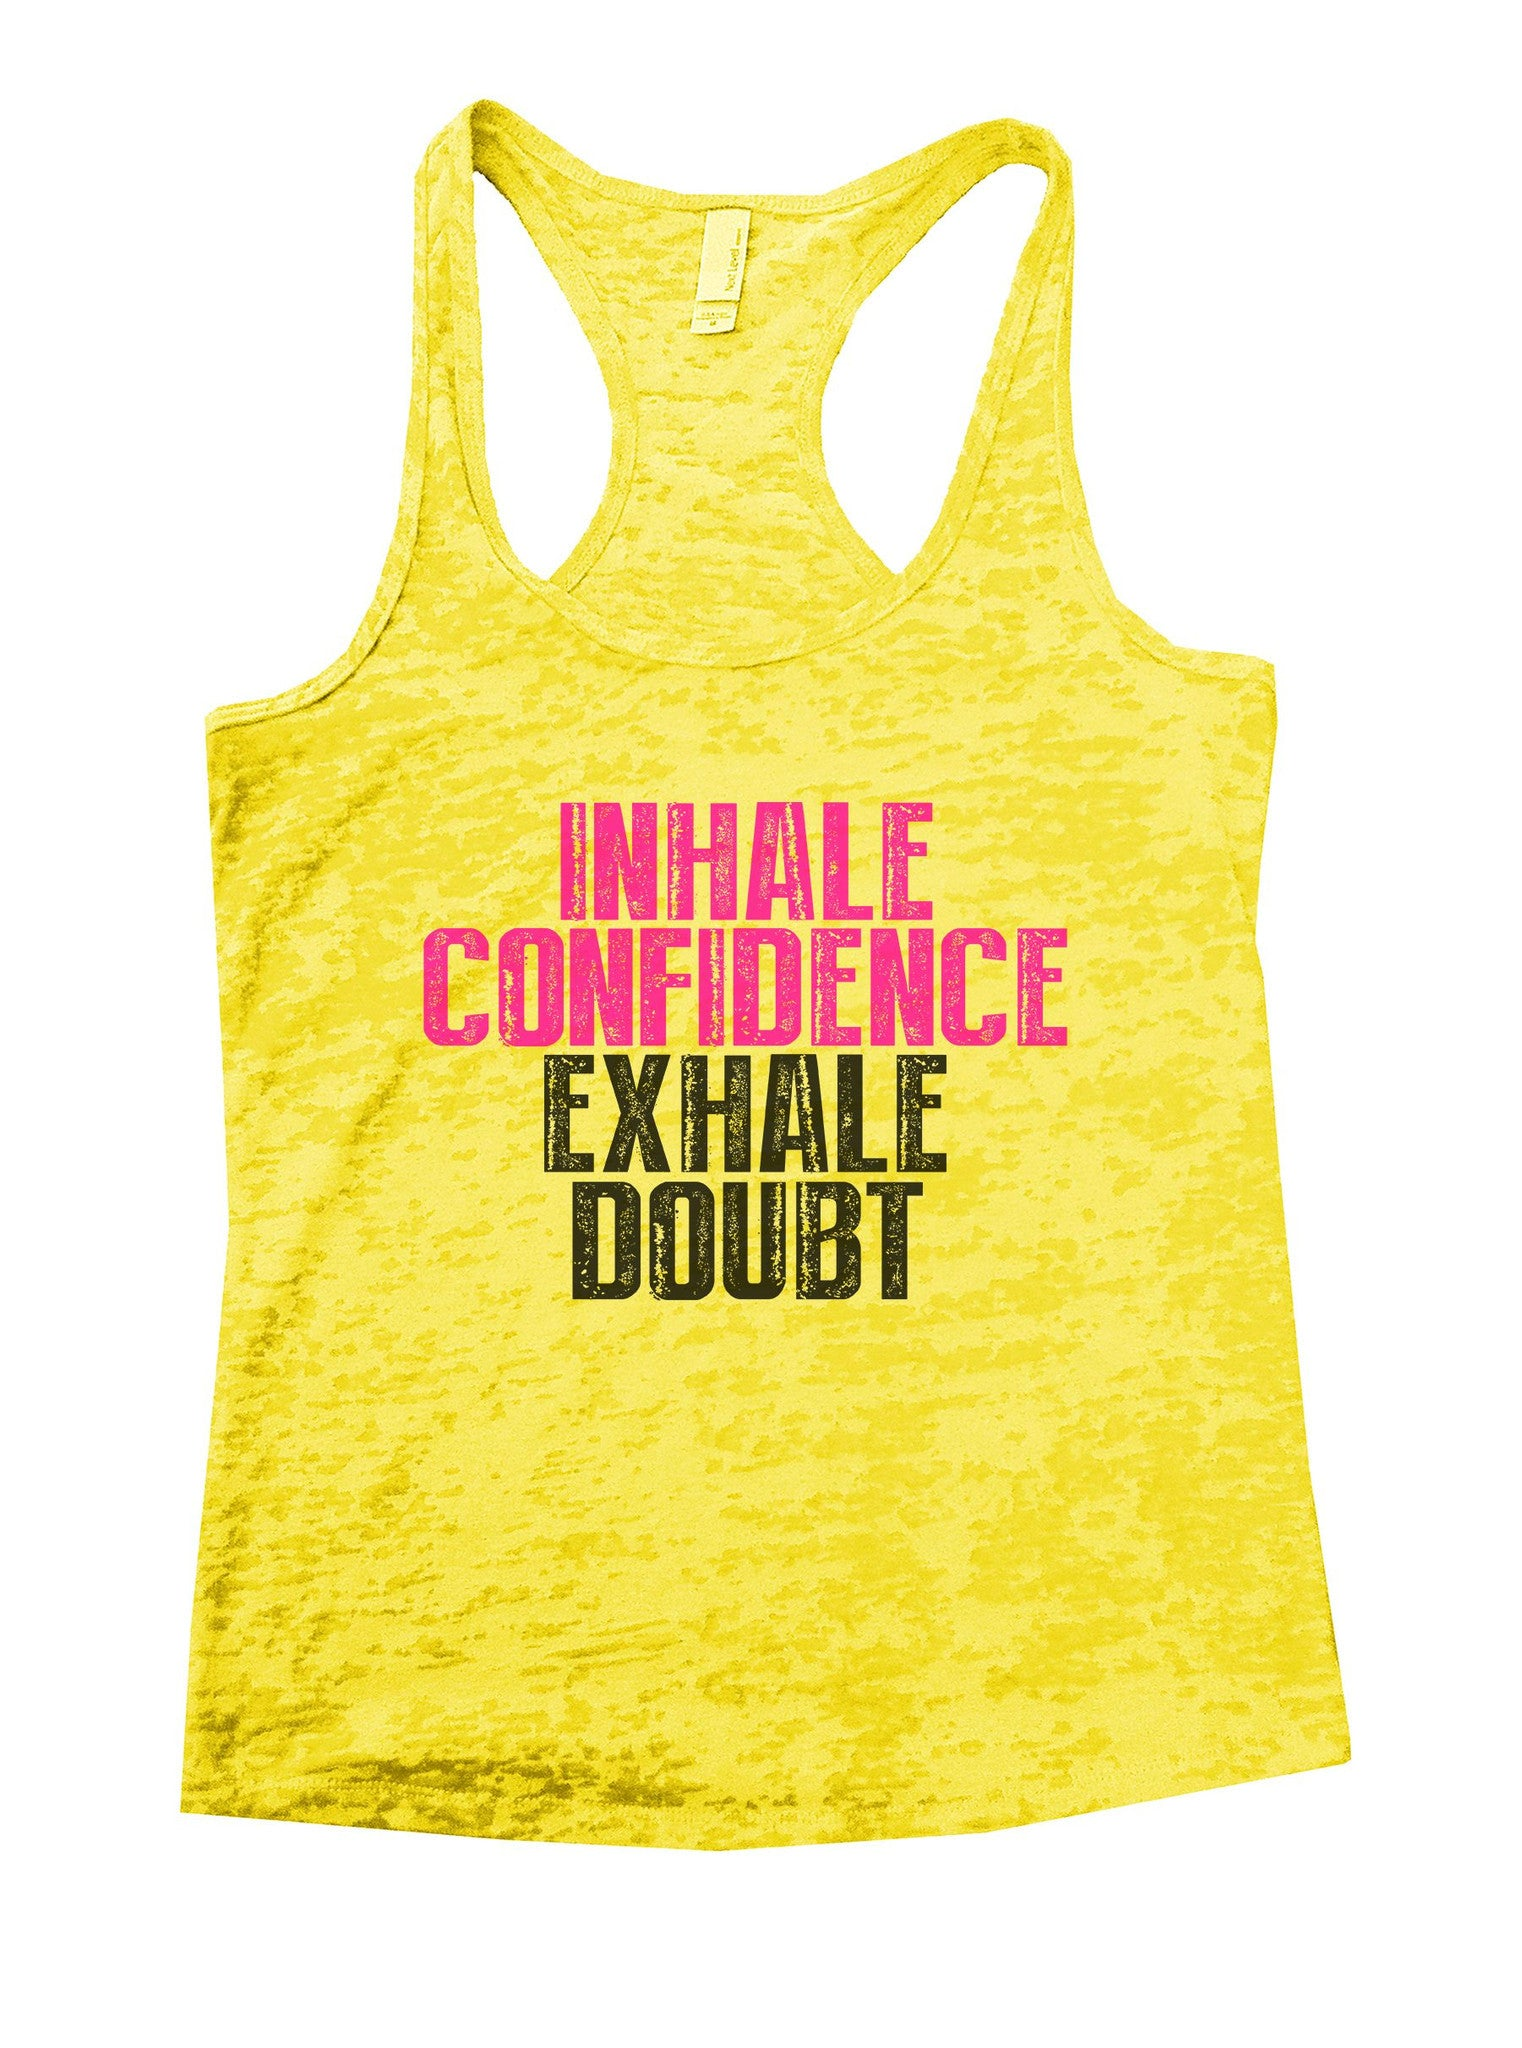 Inhale Confidence Exhale Doubt Burnout Tank Top By BurnoutTankTops.com - 1021 - Funny Shirts Tank Tops Burnouts and Triblends  - 7